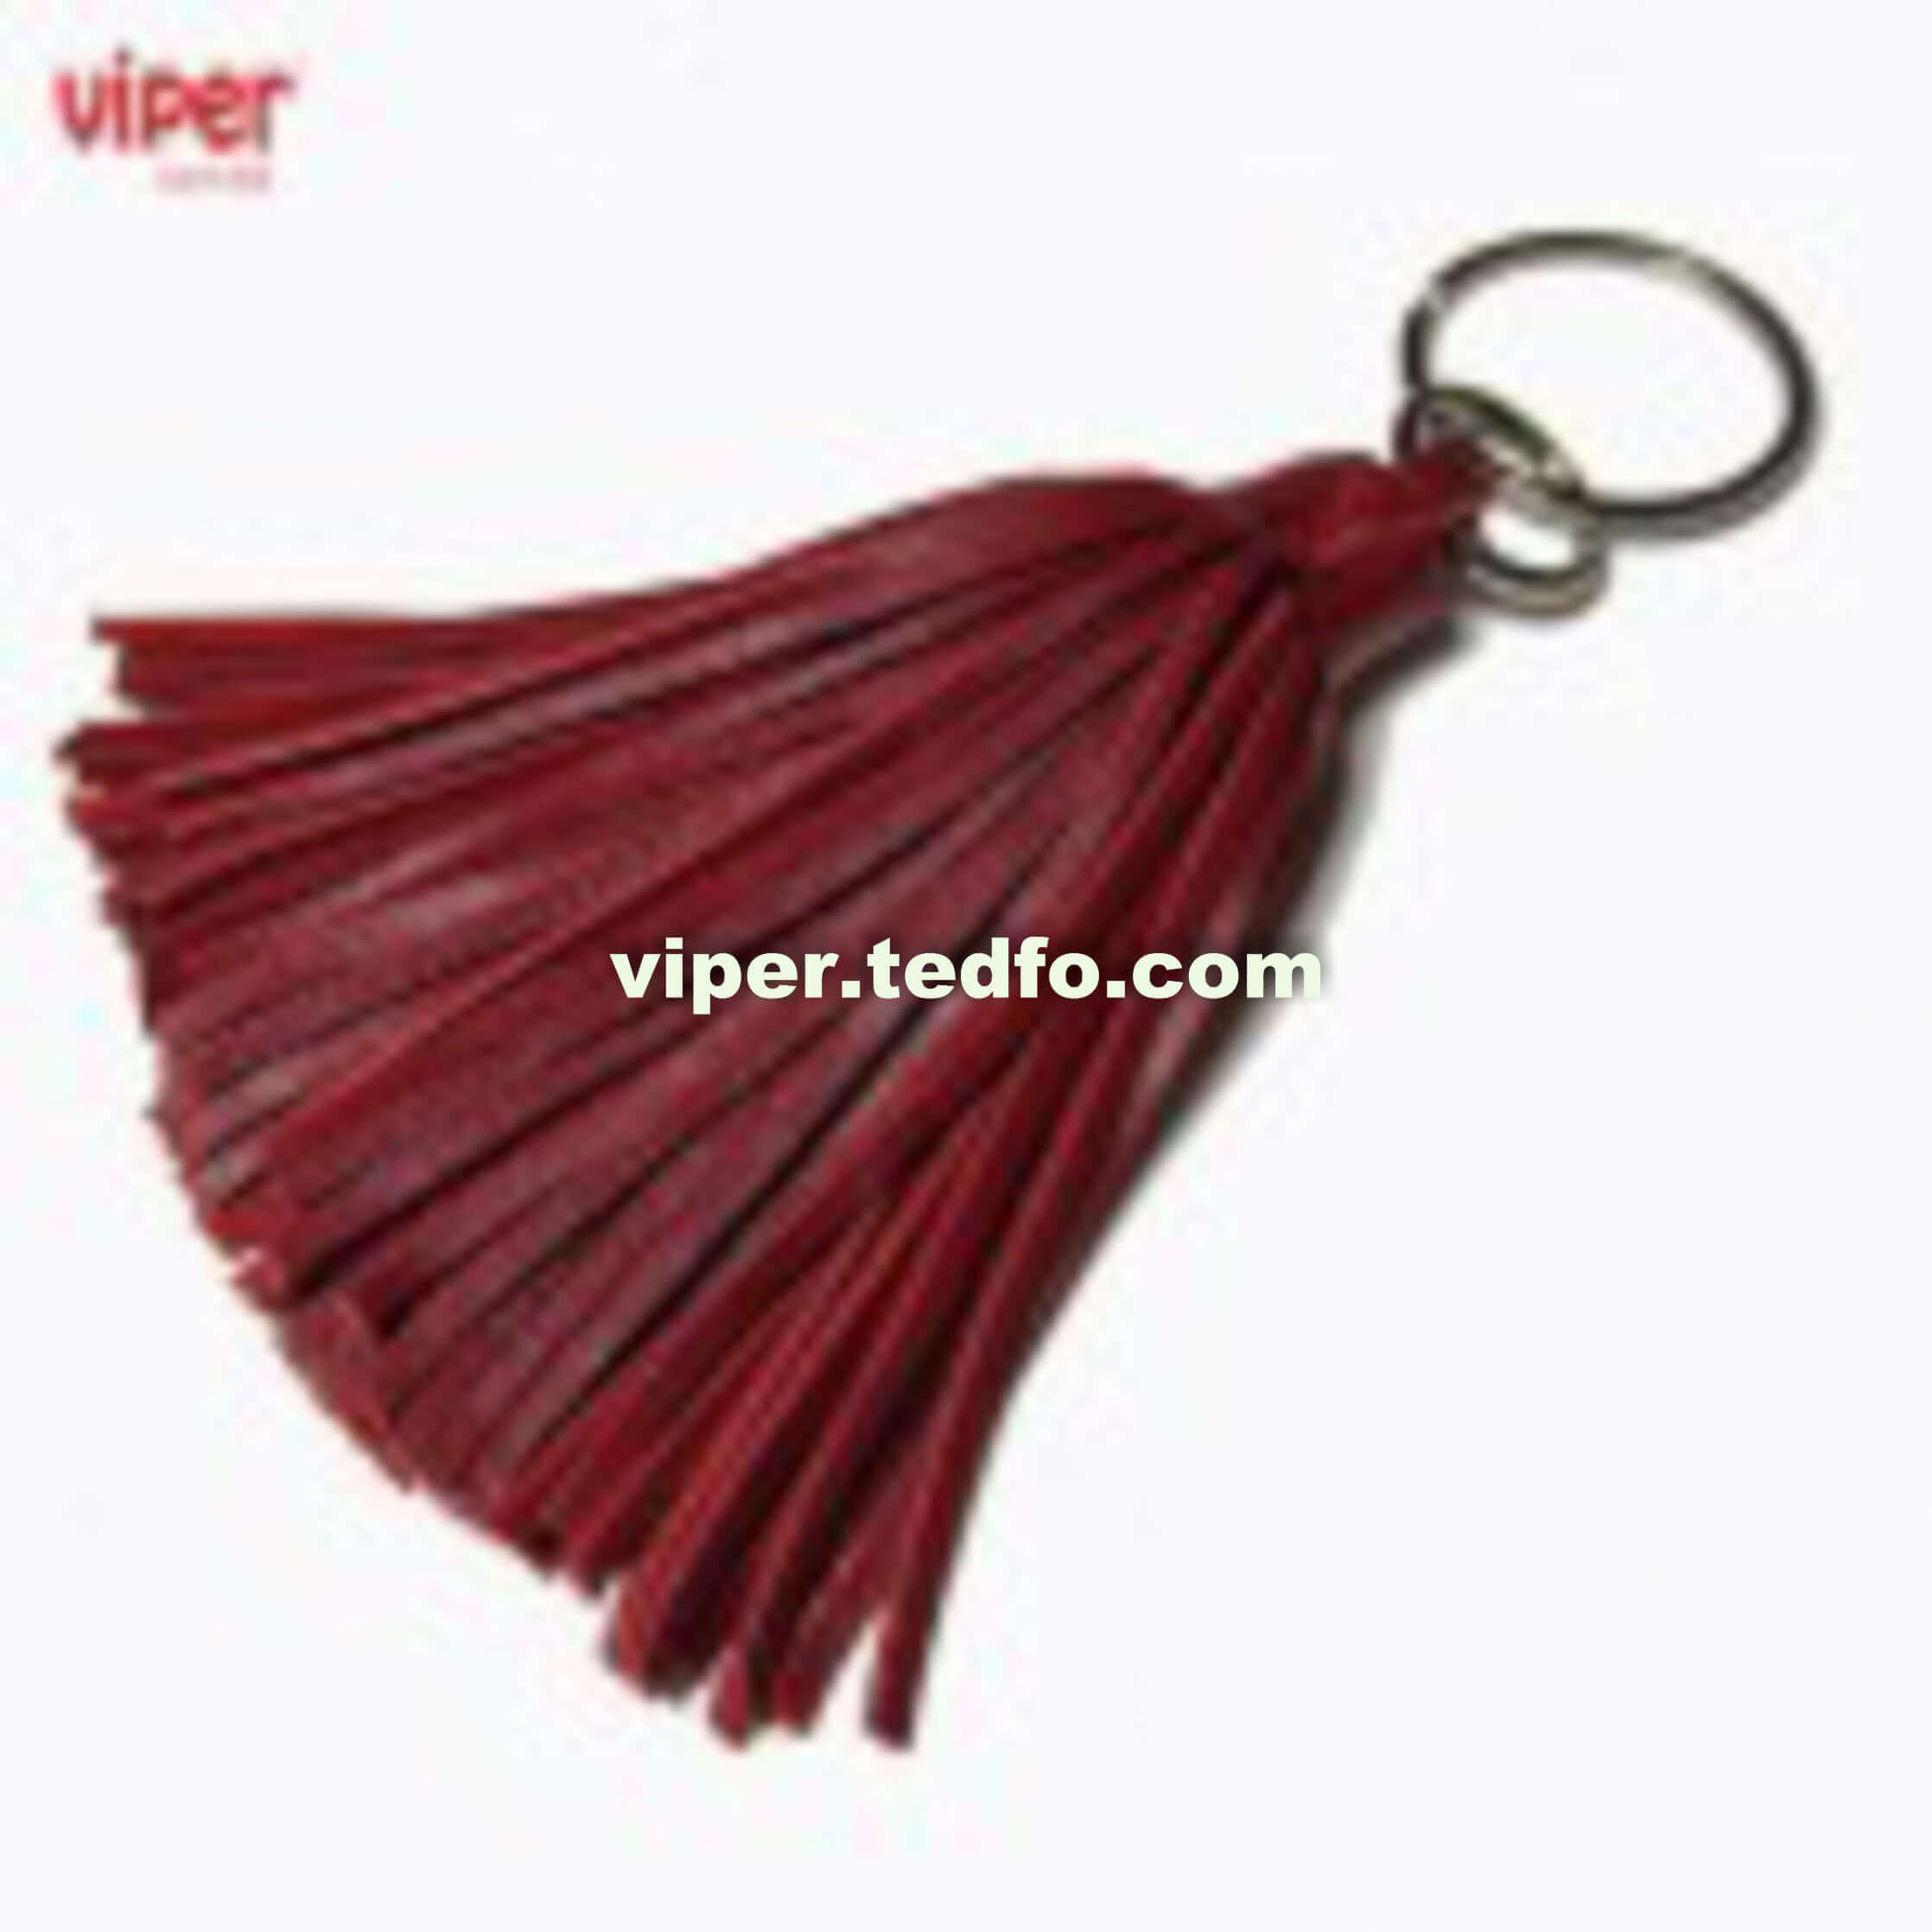 Viper Leather Key Ring (VC726),Red colored, Stylish